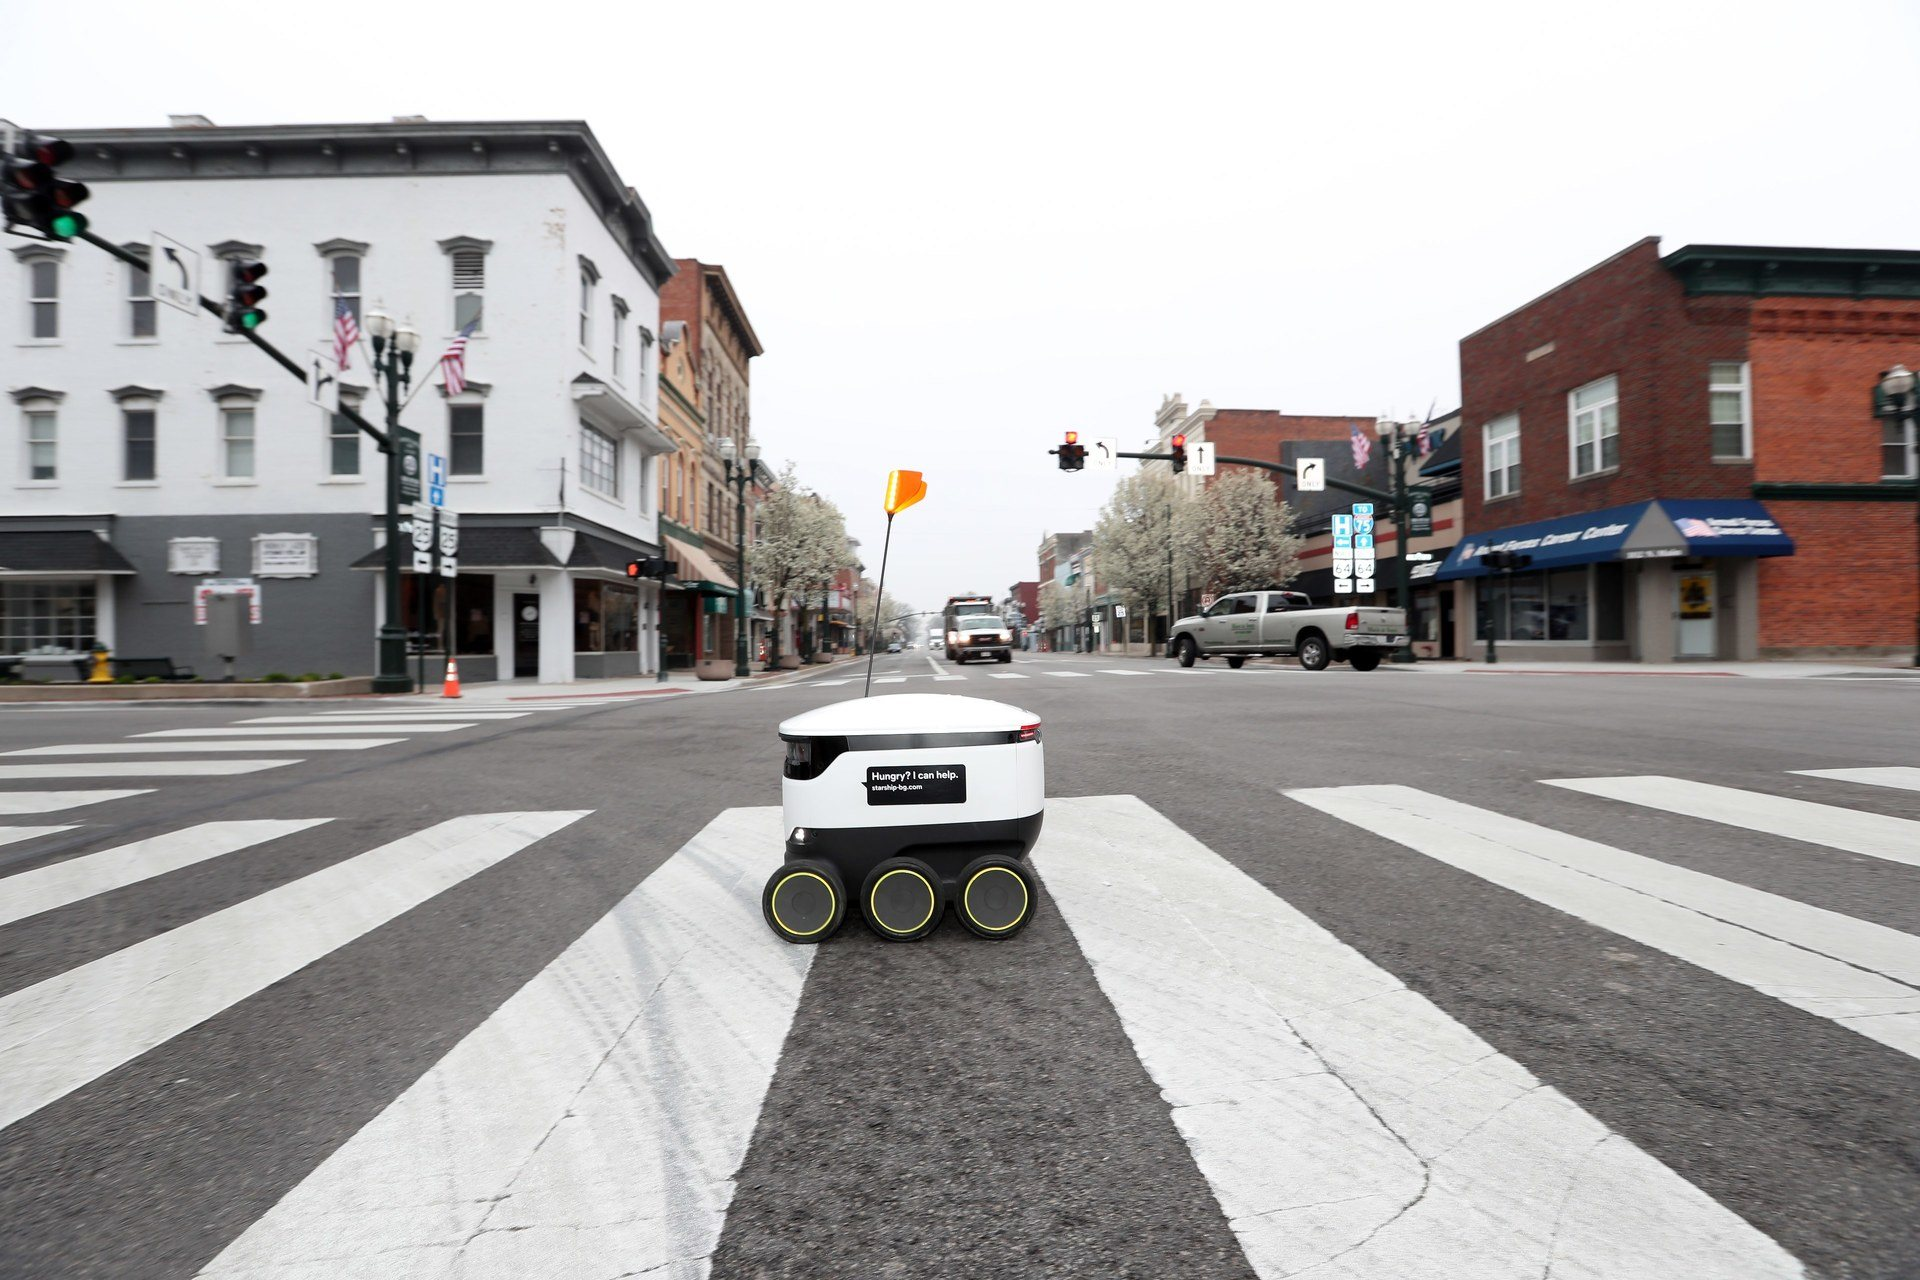 Starship robot crossing main street in crosswalk